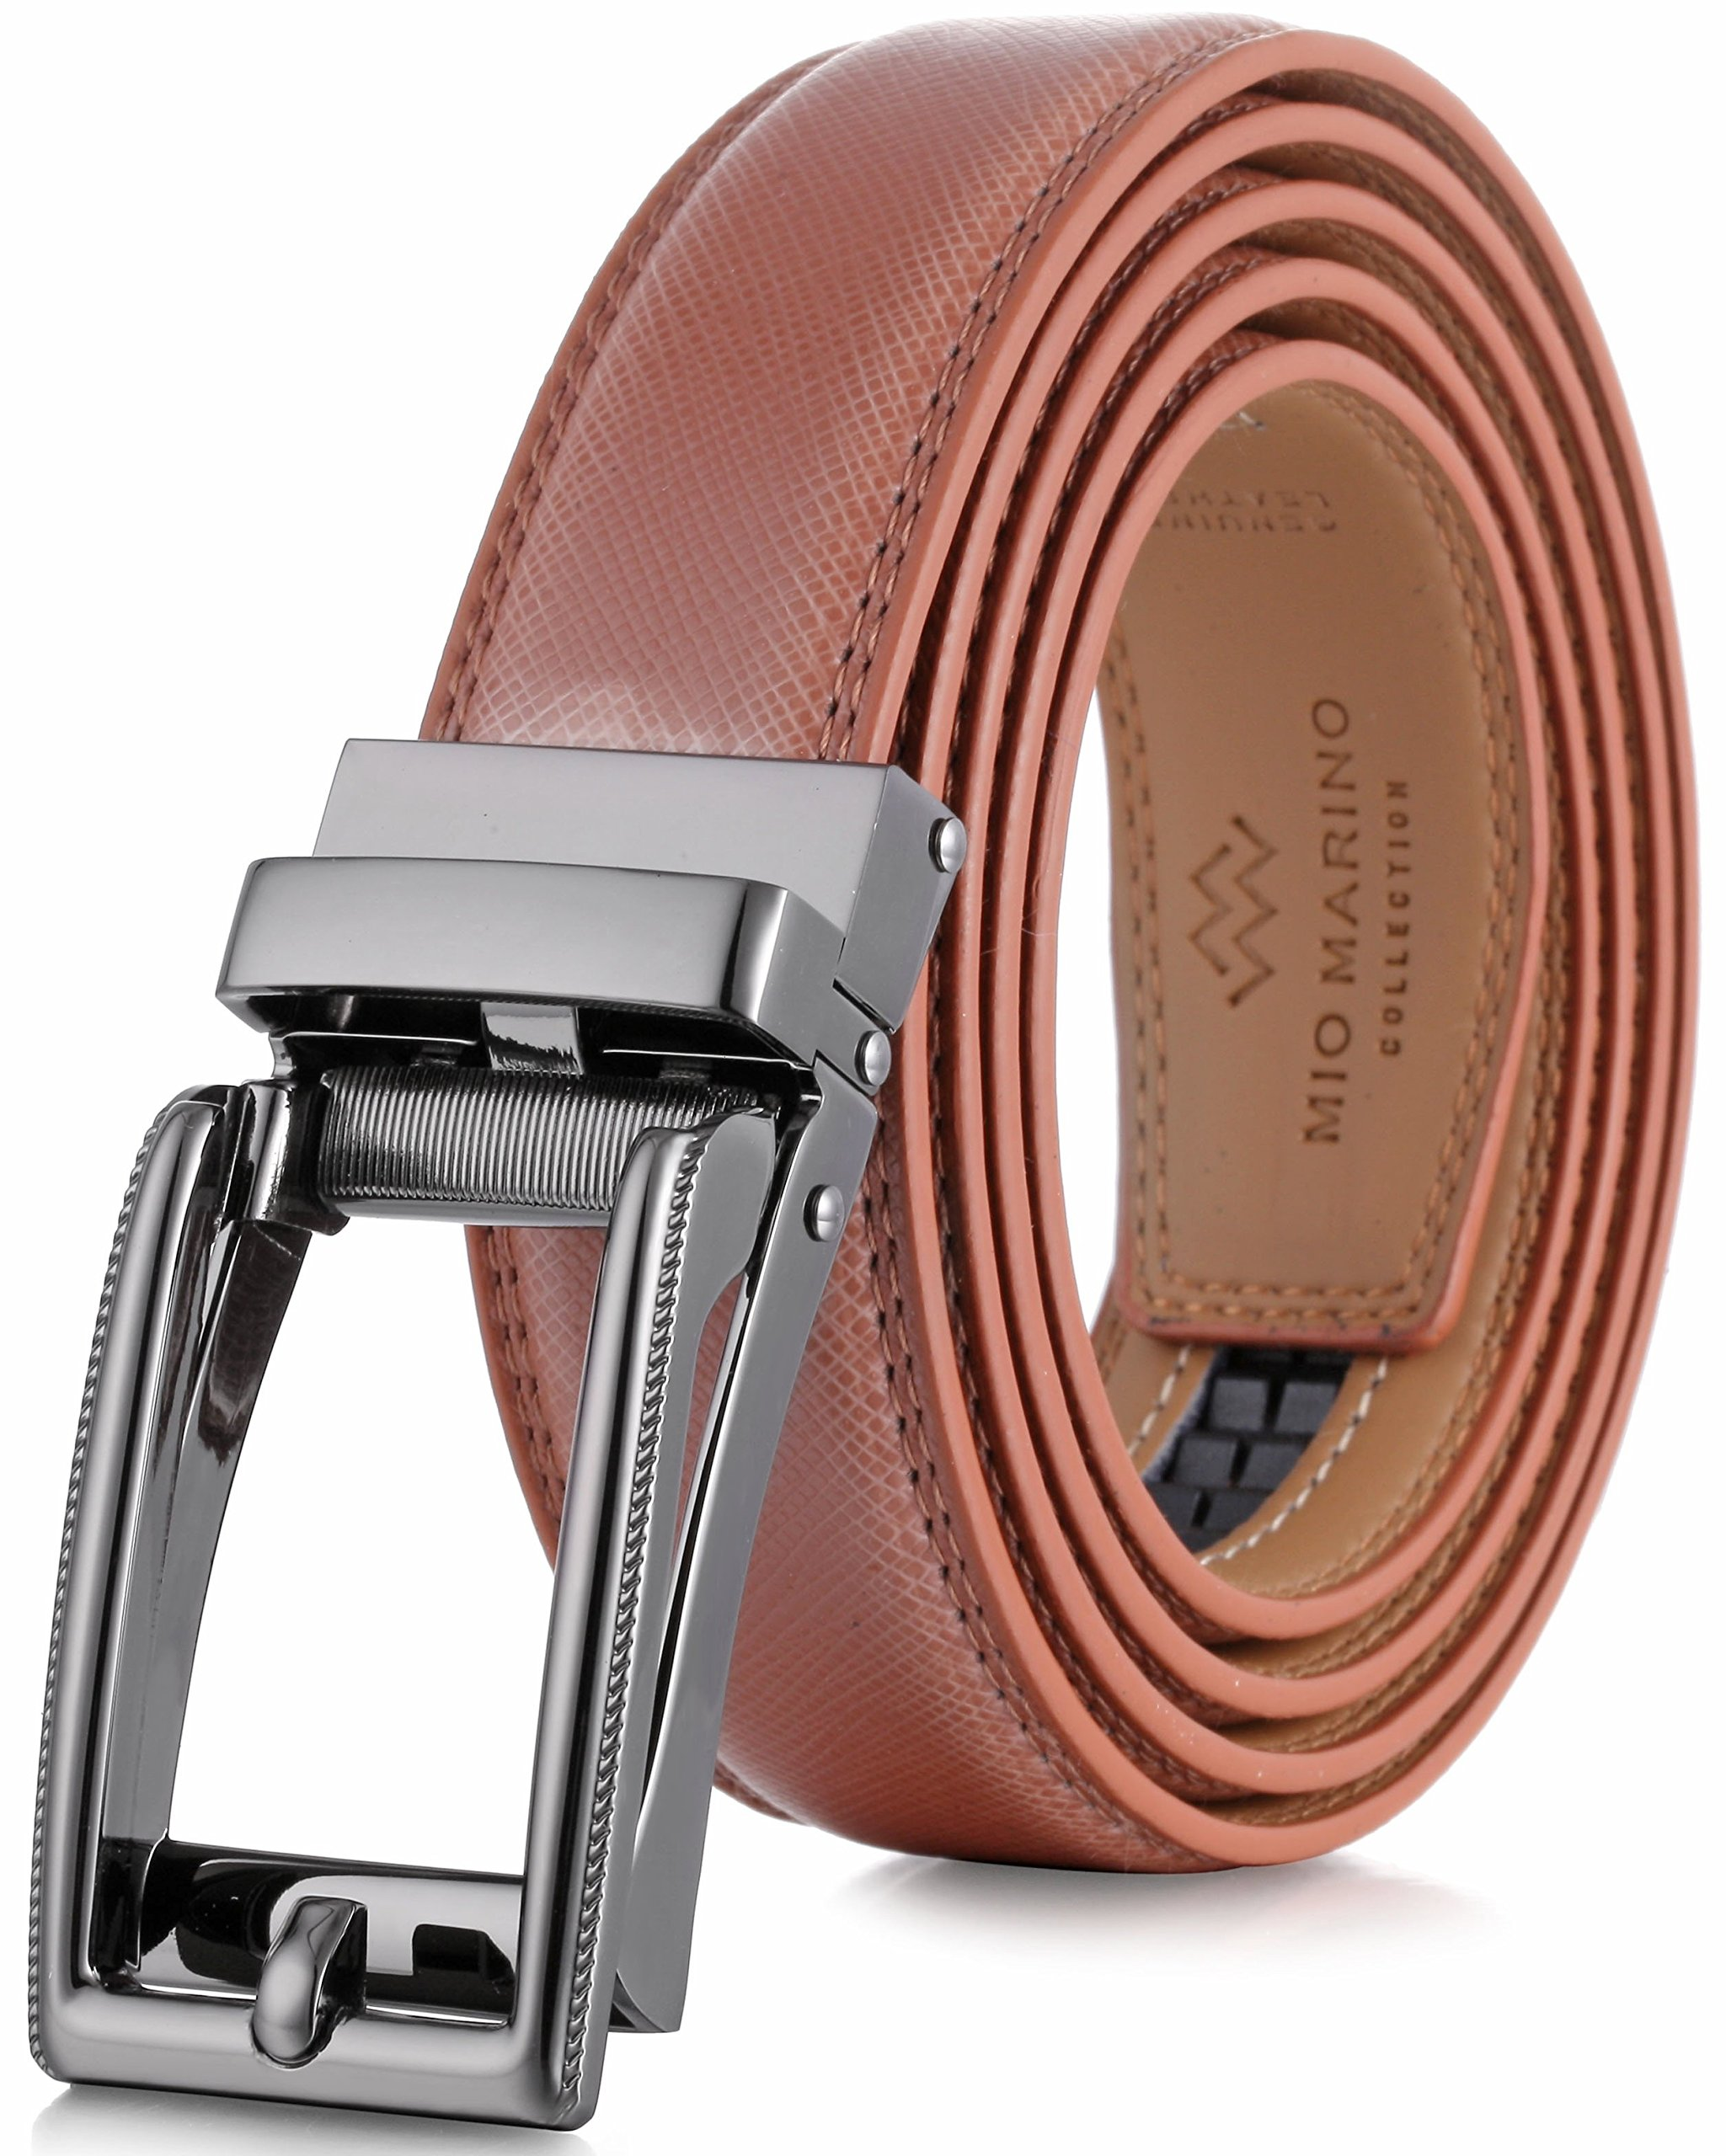 Marino Men's Genuine Leather Ratchet Dress Belt with Open Linxx Buckle, Enclosed in an Elegant Gift Box - Light Tan - Style 70 - Custom: Up to 44'' Waist by Marino Avenue (Image #2)